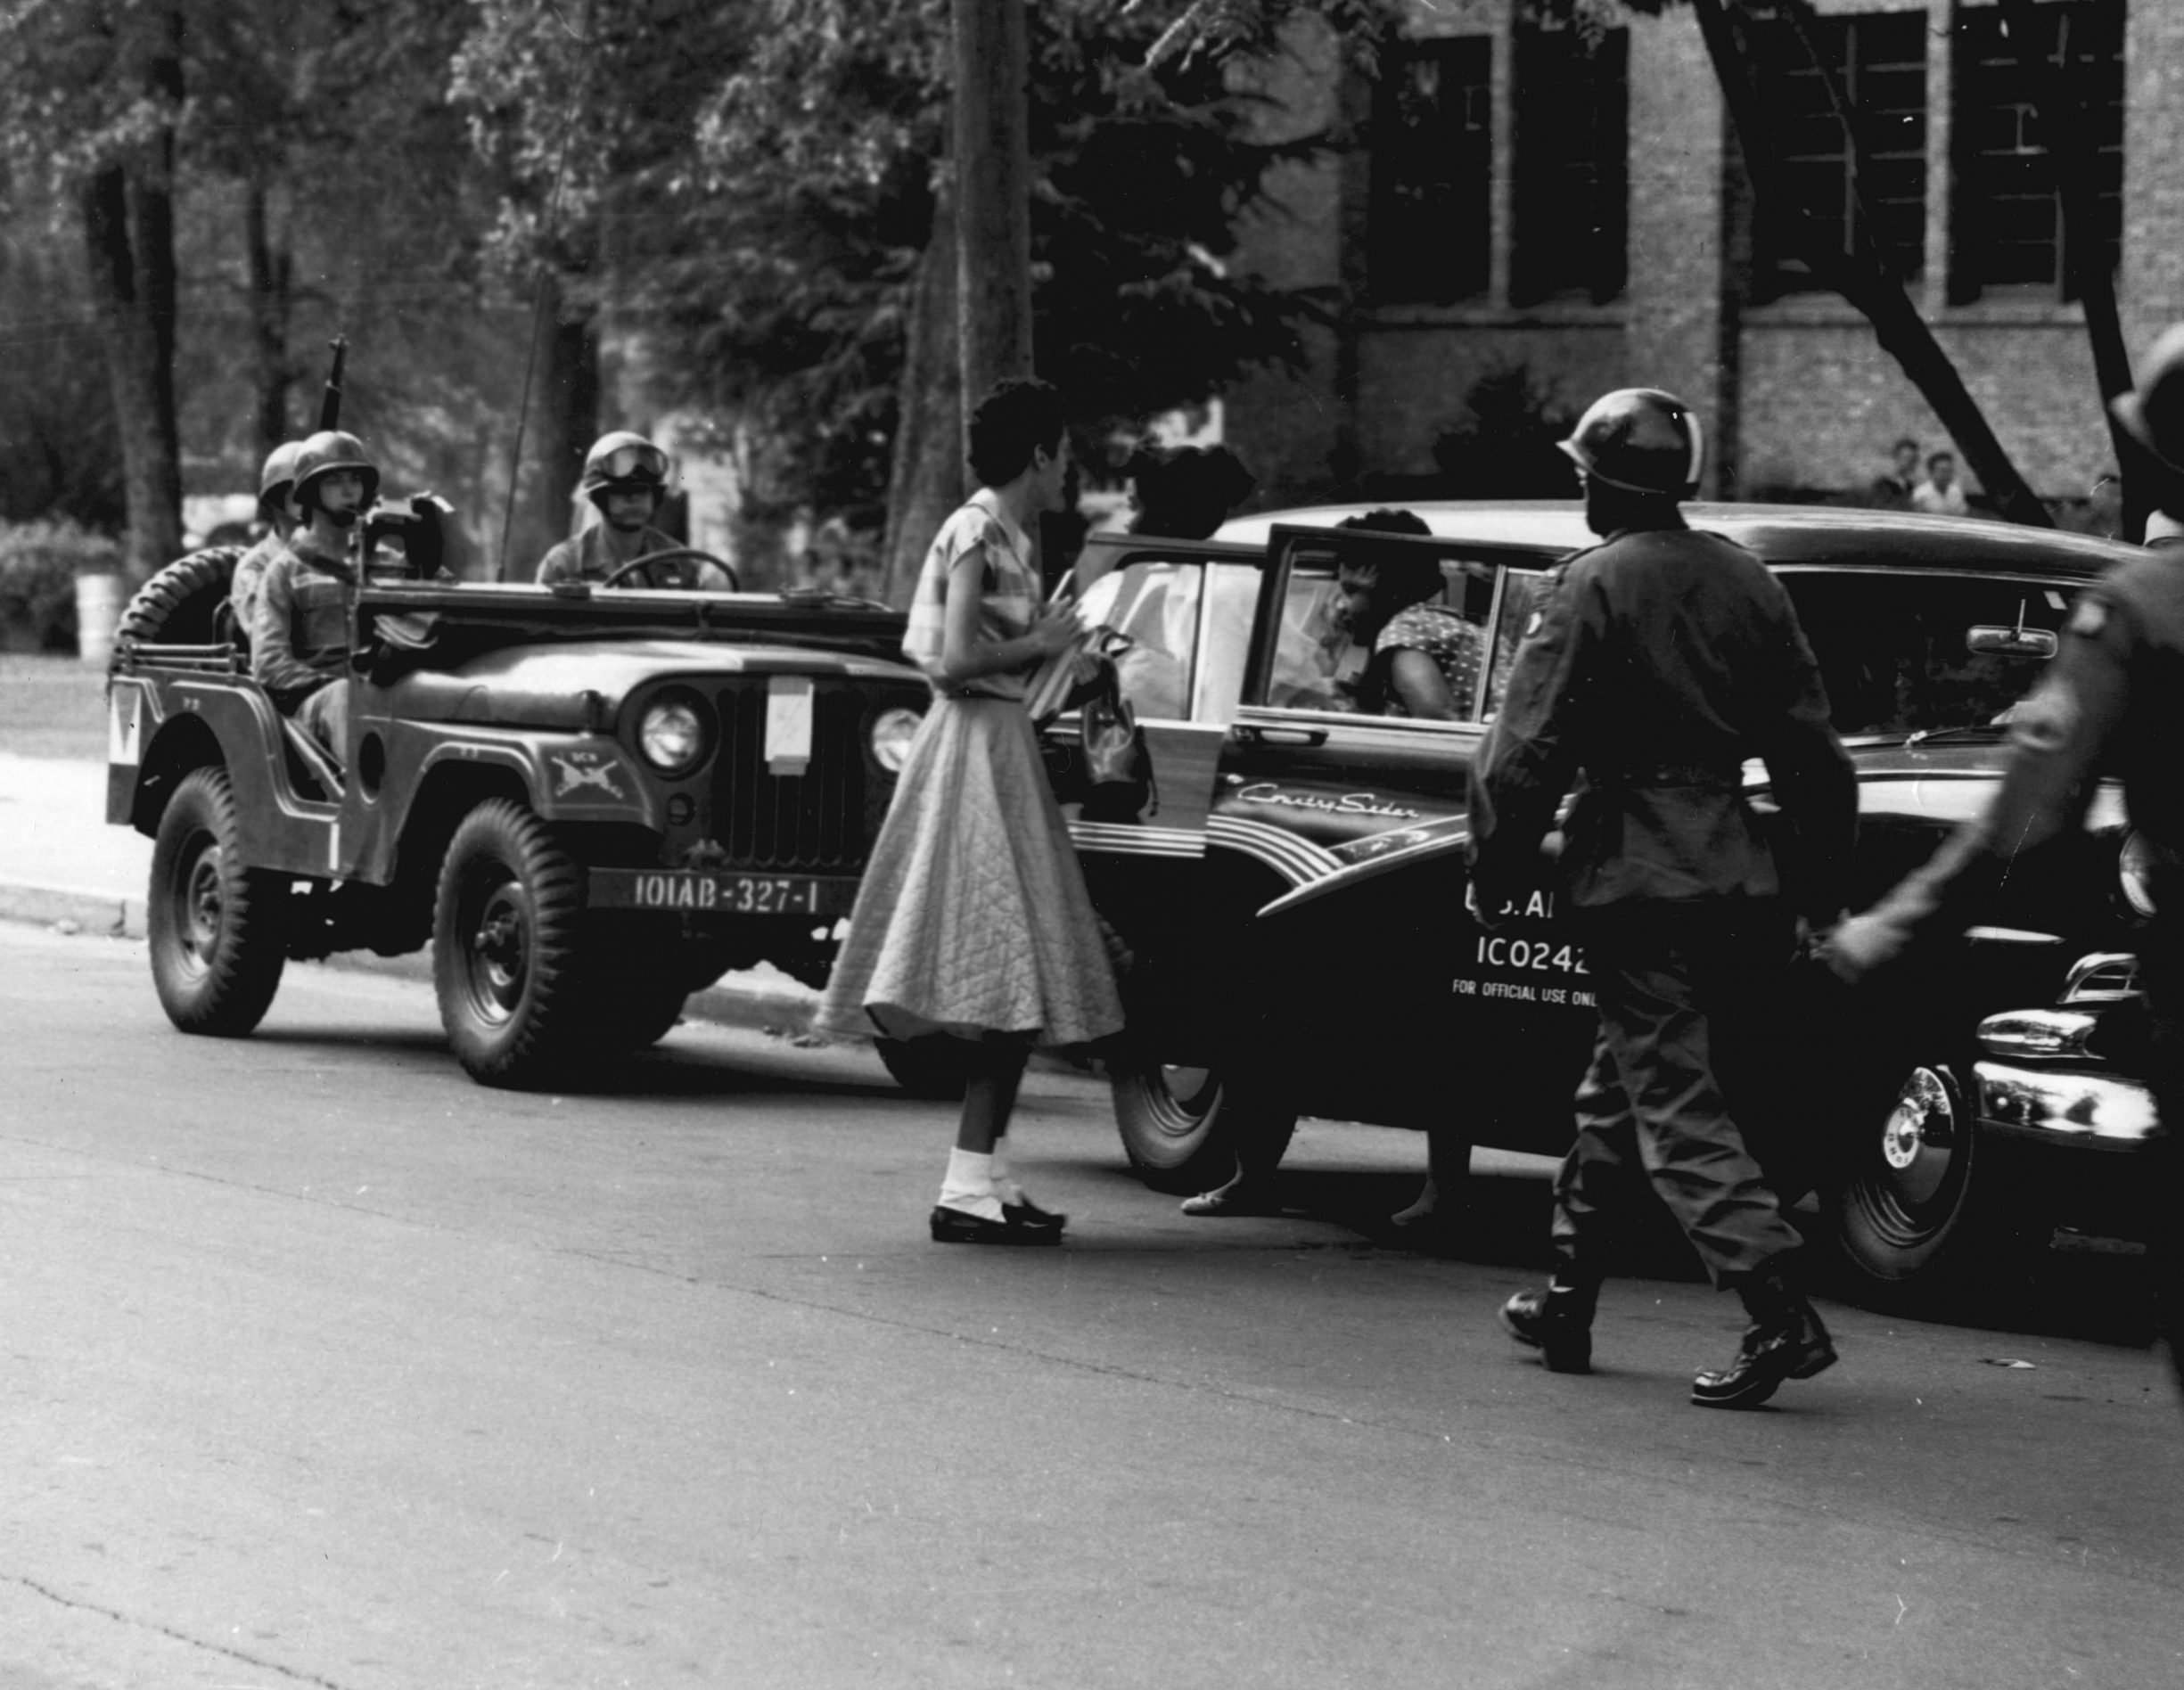 Soldiers from the 101st Airborne Division escort African-American students to Central High School in Little Rock in Sept. 1957, after the governor of Arkansas tried to enforce segregation. Photo courtesy National Archives. Operation Arkansas. Photo by The U.S. Army. (CC BY 2.0).